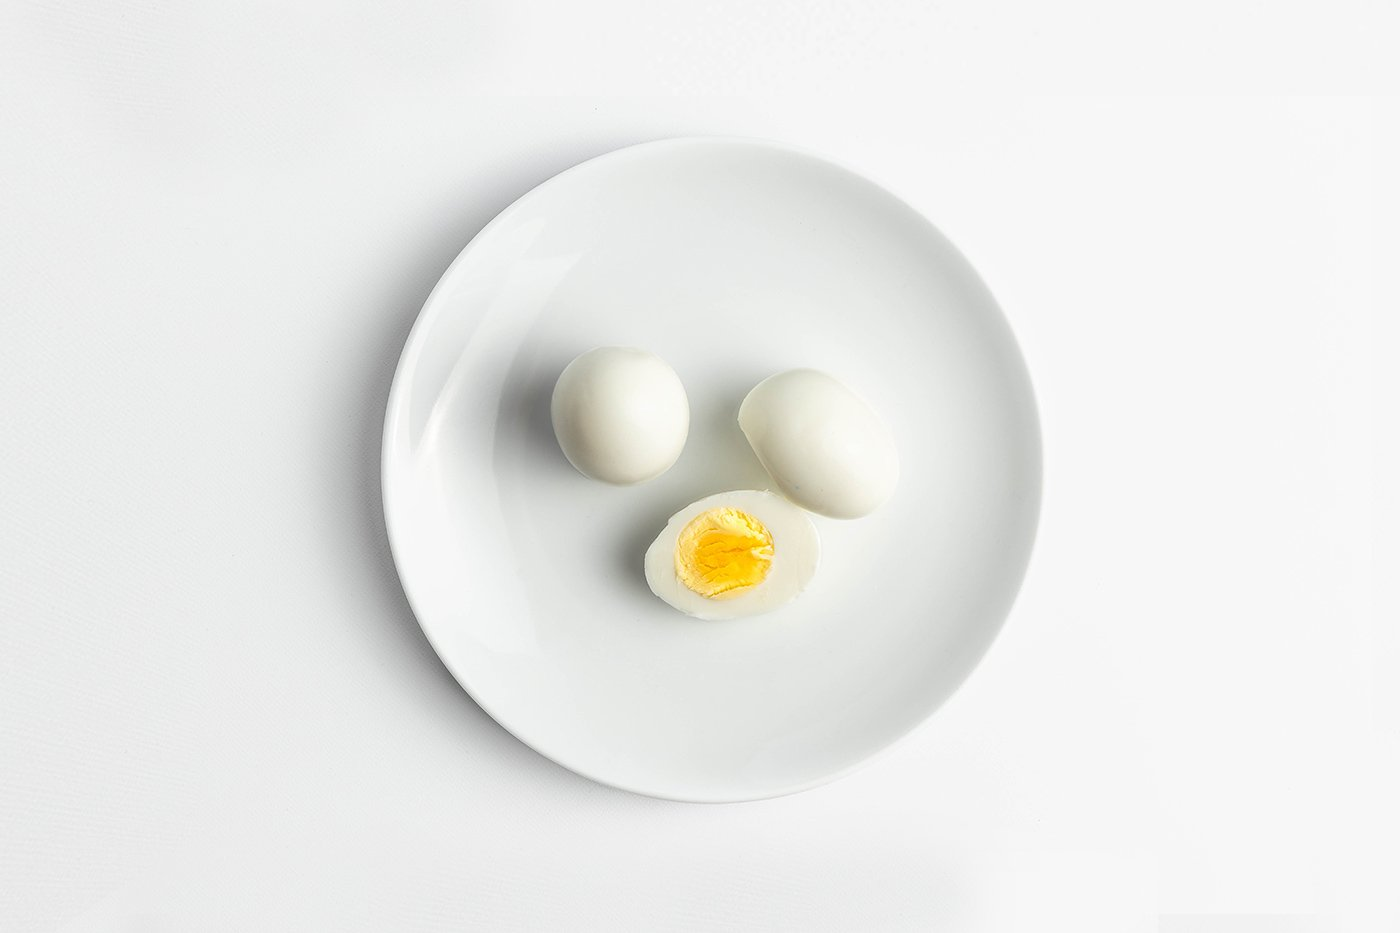 Peeled Hard Boiled Eggs Product Image